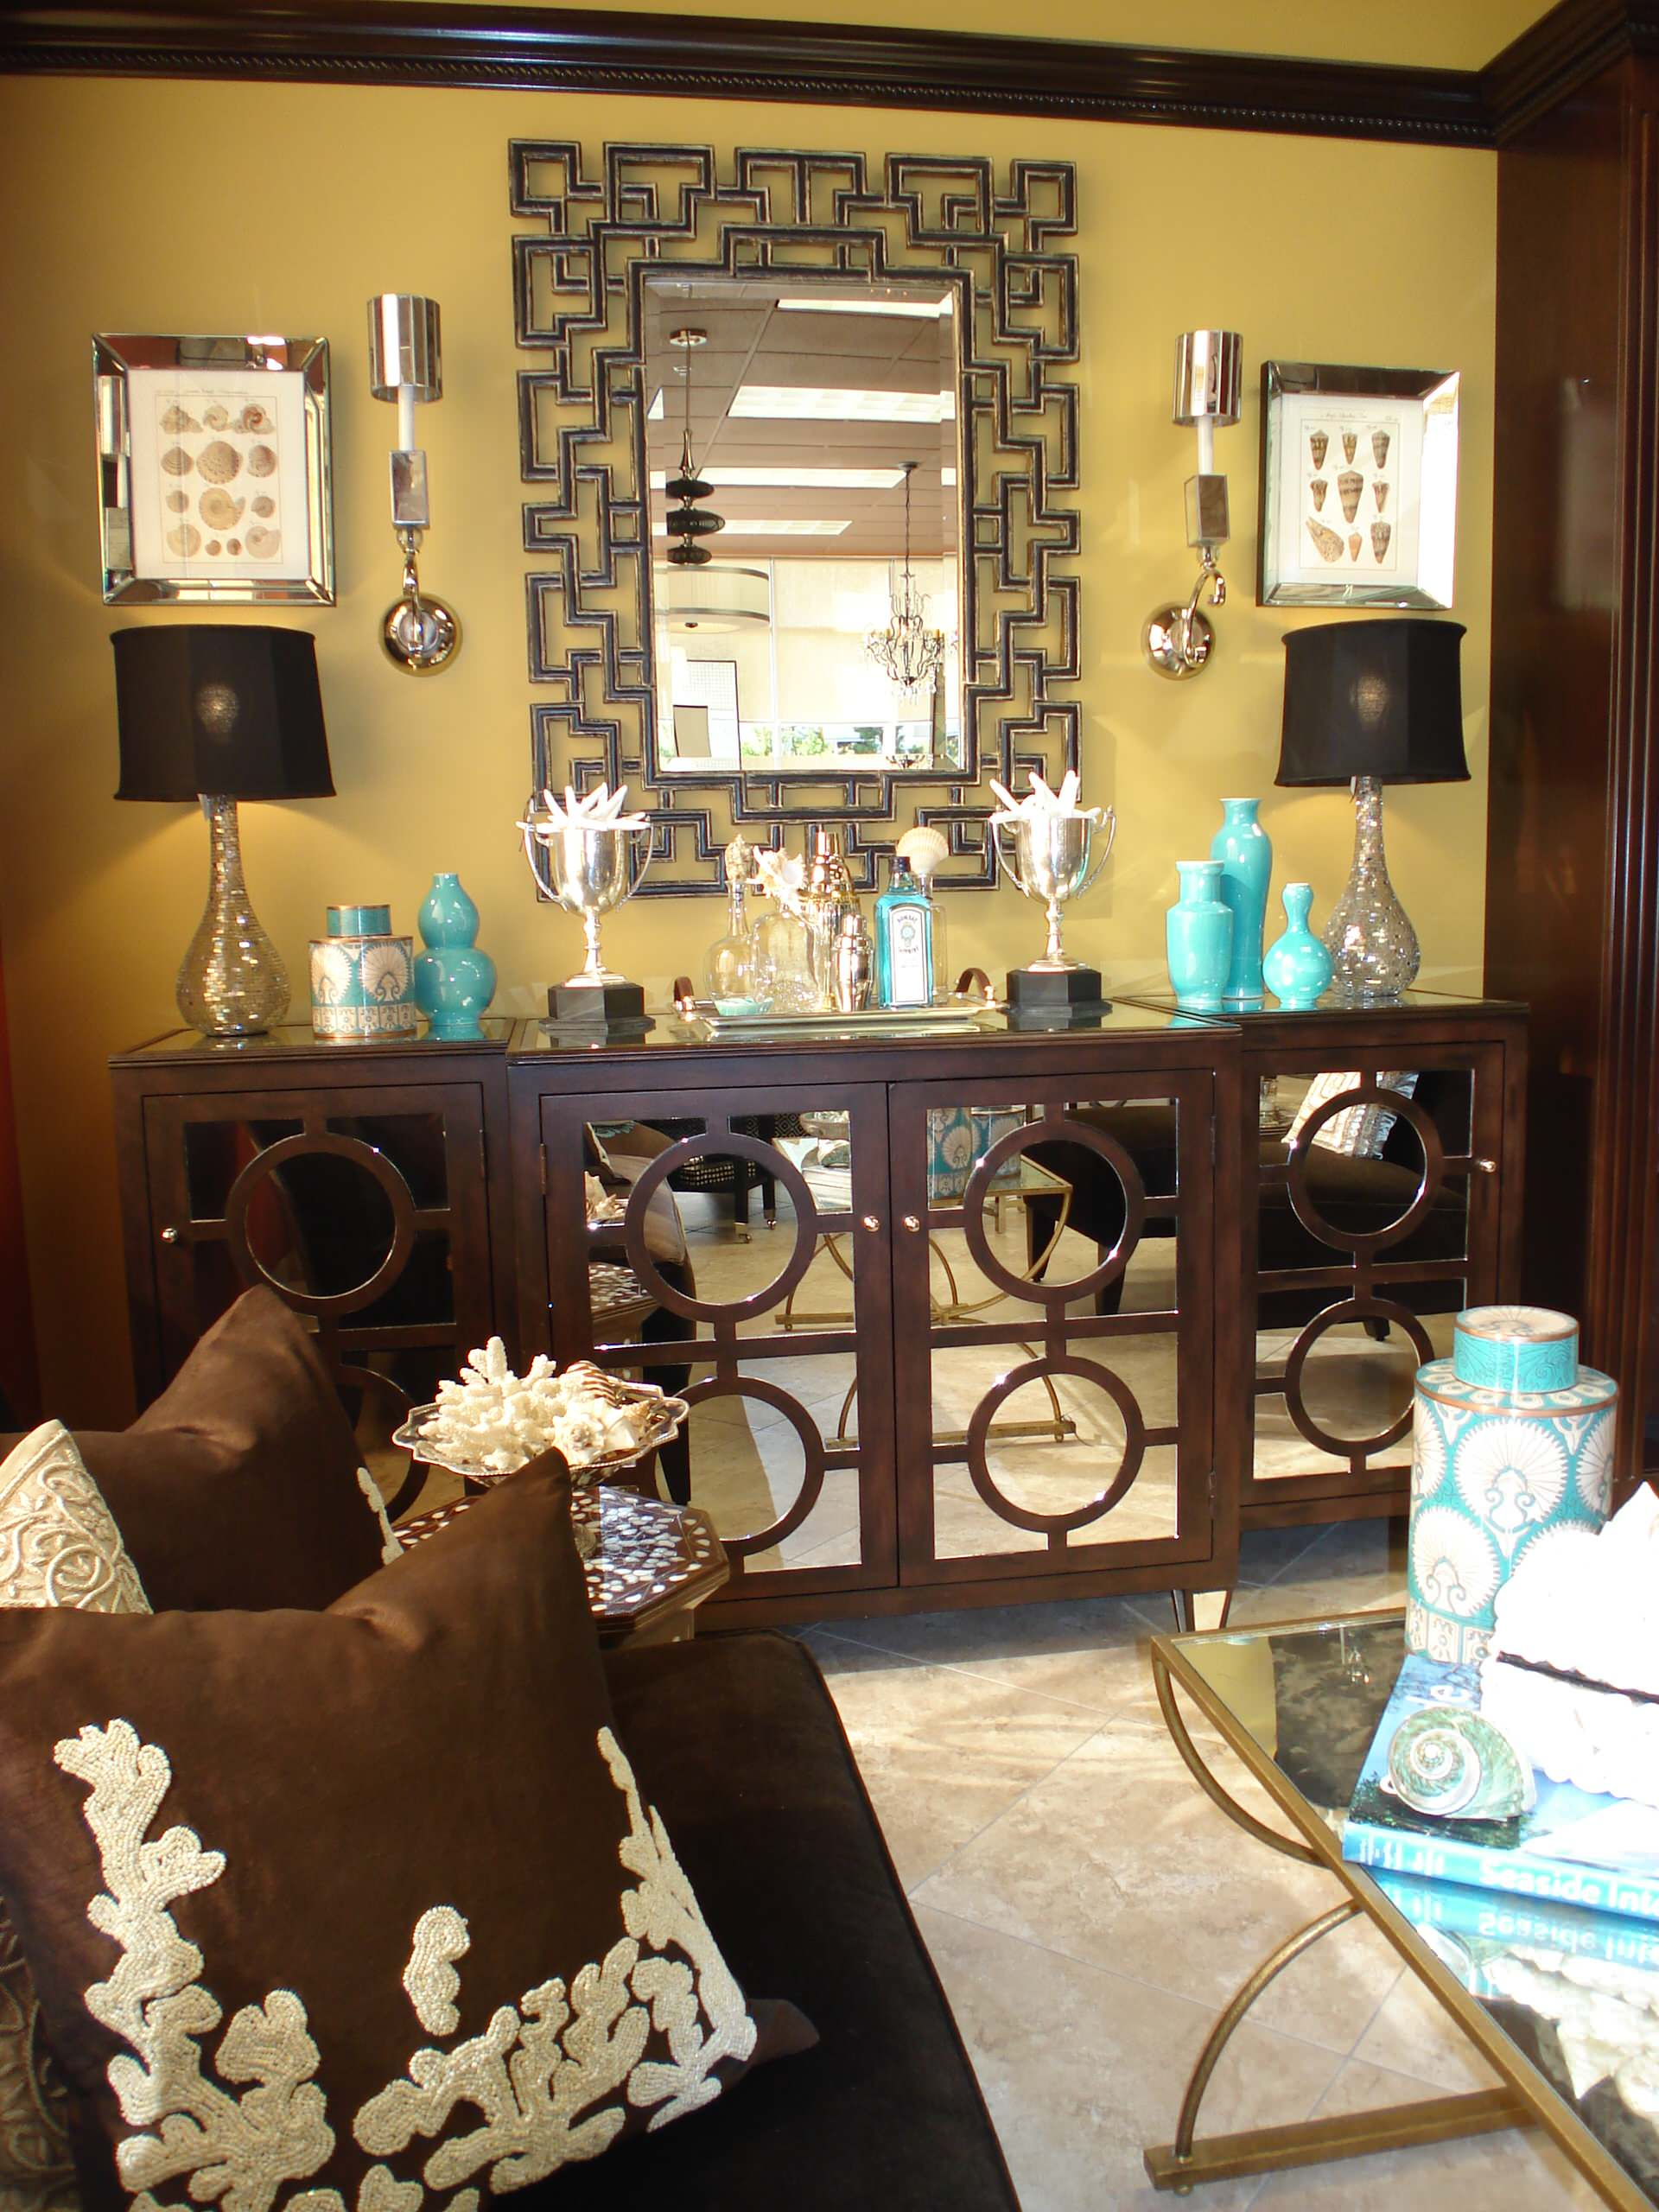 Chocolate Brown And Turquoise Ideas & Photos   Houzz